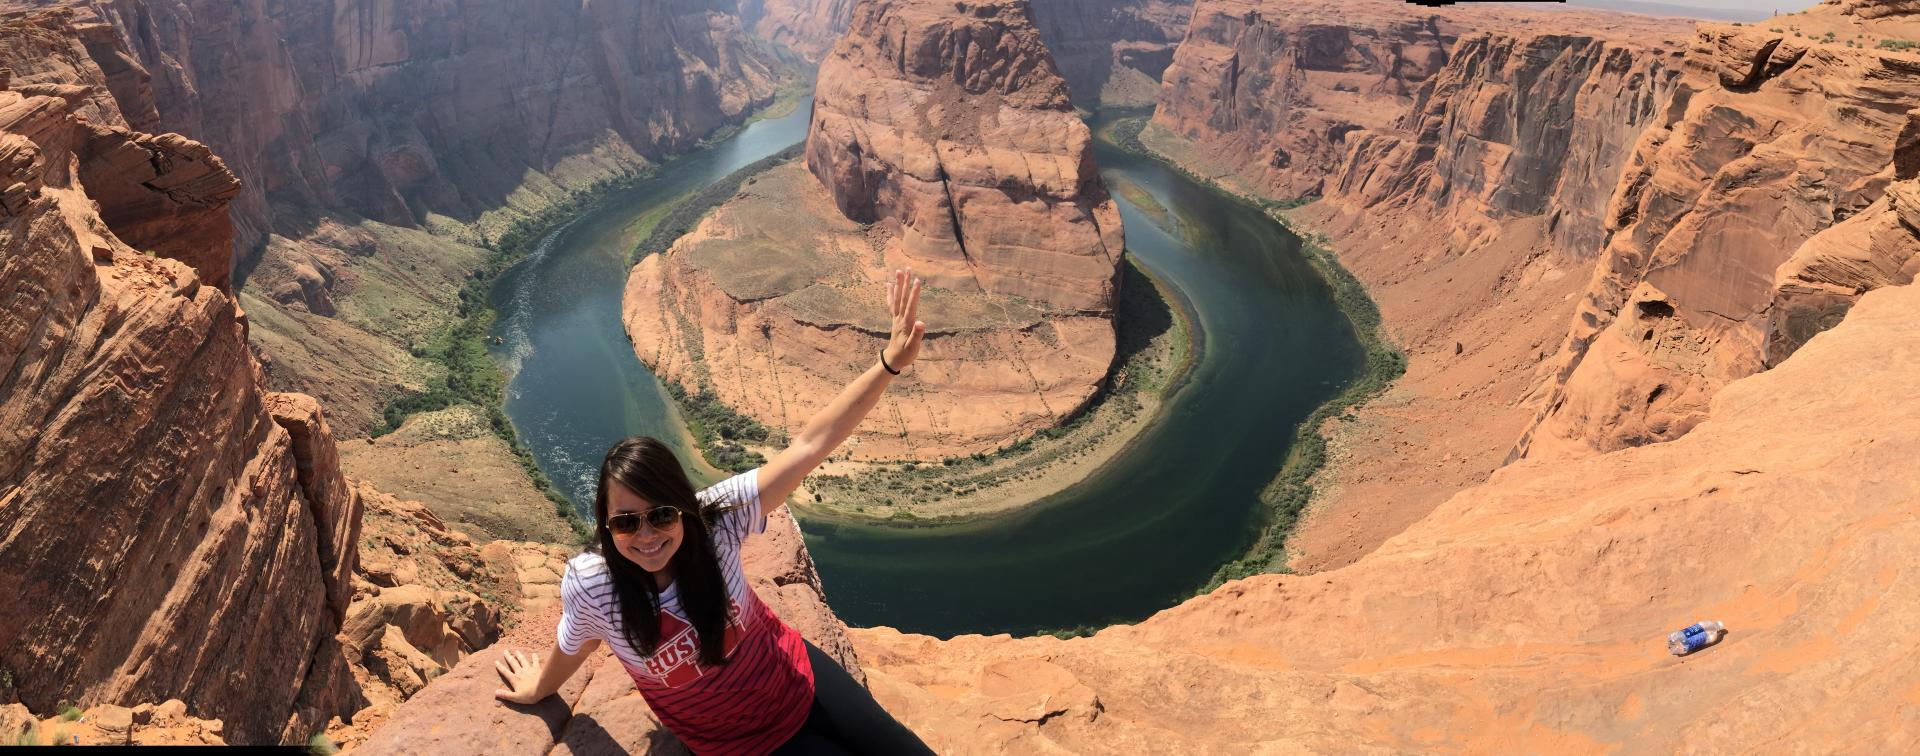 BSMP student, Cecilia Beatriz Nascimento Lima at the Horseshoe Bend at Lake Powell during the summer road trip.